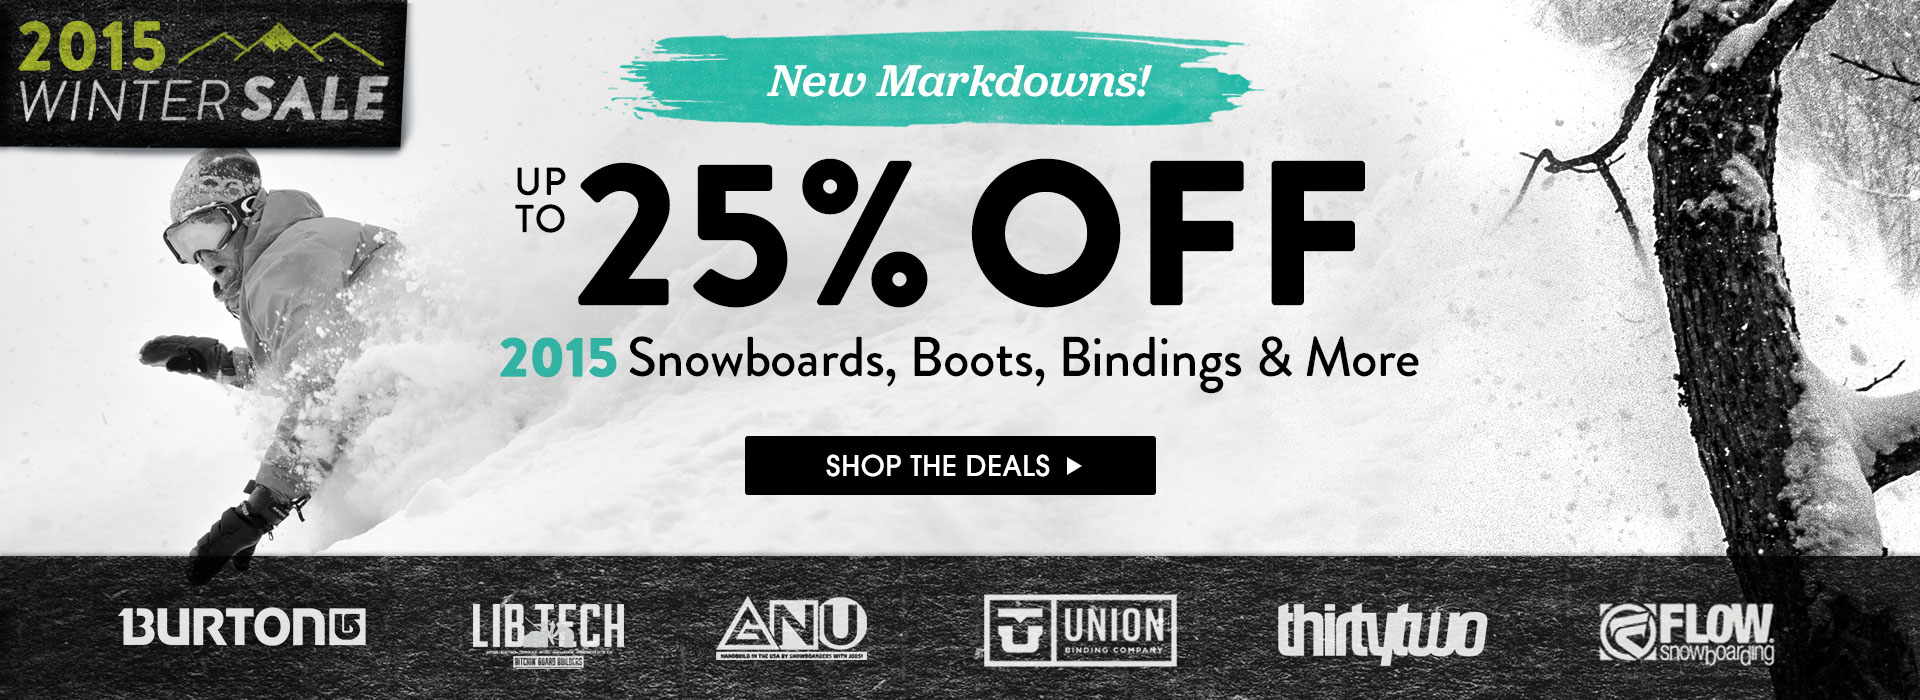 2015 Winter Sale. Save Up To 25% Off Select Snowboard Brands!